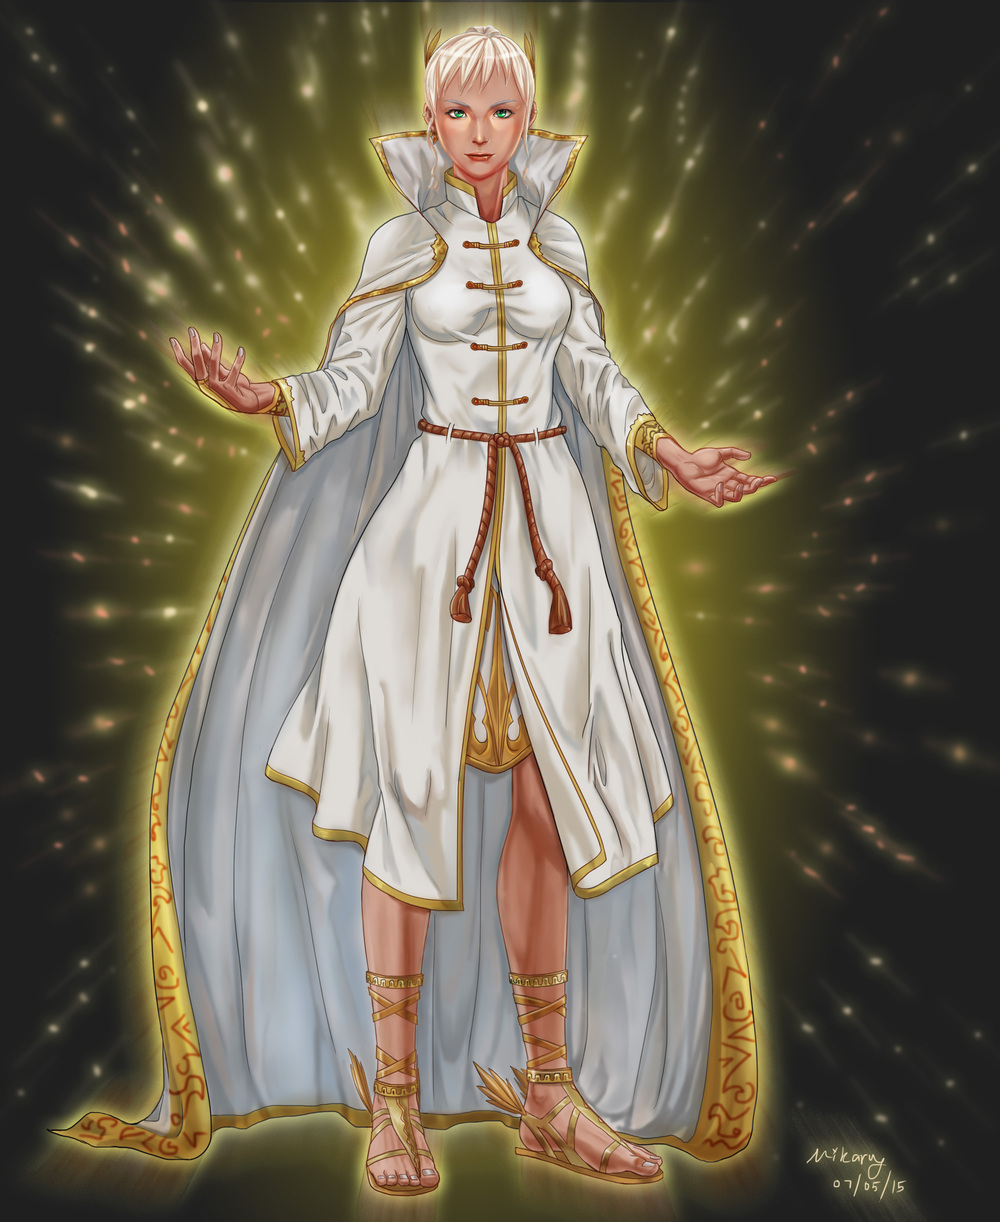 Lily, a priestess looking lady. Tall. Tan skin. White and gold robes. Glowing gold. A nice lady, with her nice white hair and general invitingness. She'll take advantage of you, though. By https://m1karu.deviantart.com